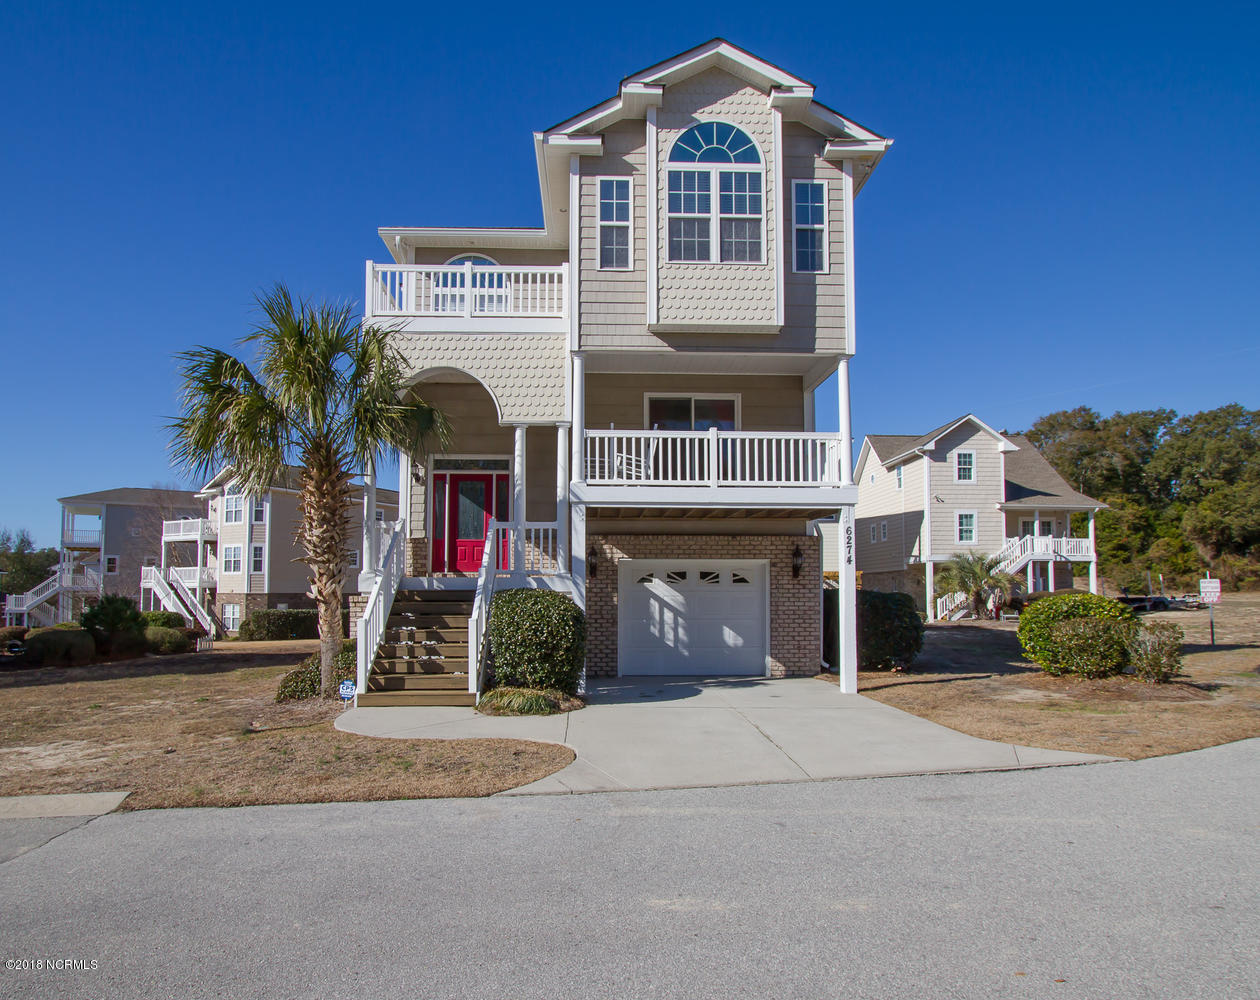 6274 Maritime Way Ocean Isle Beach, NC 28469